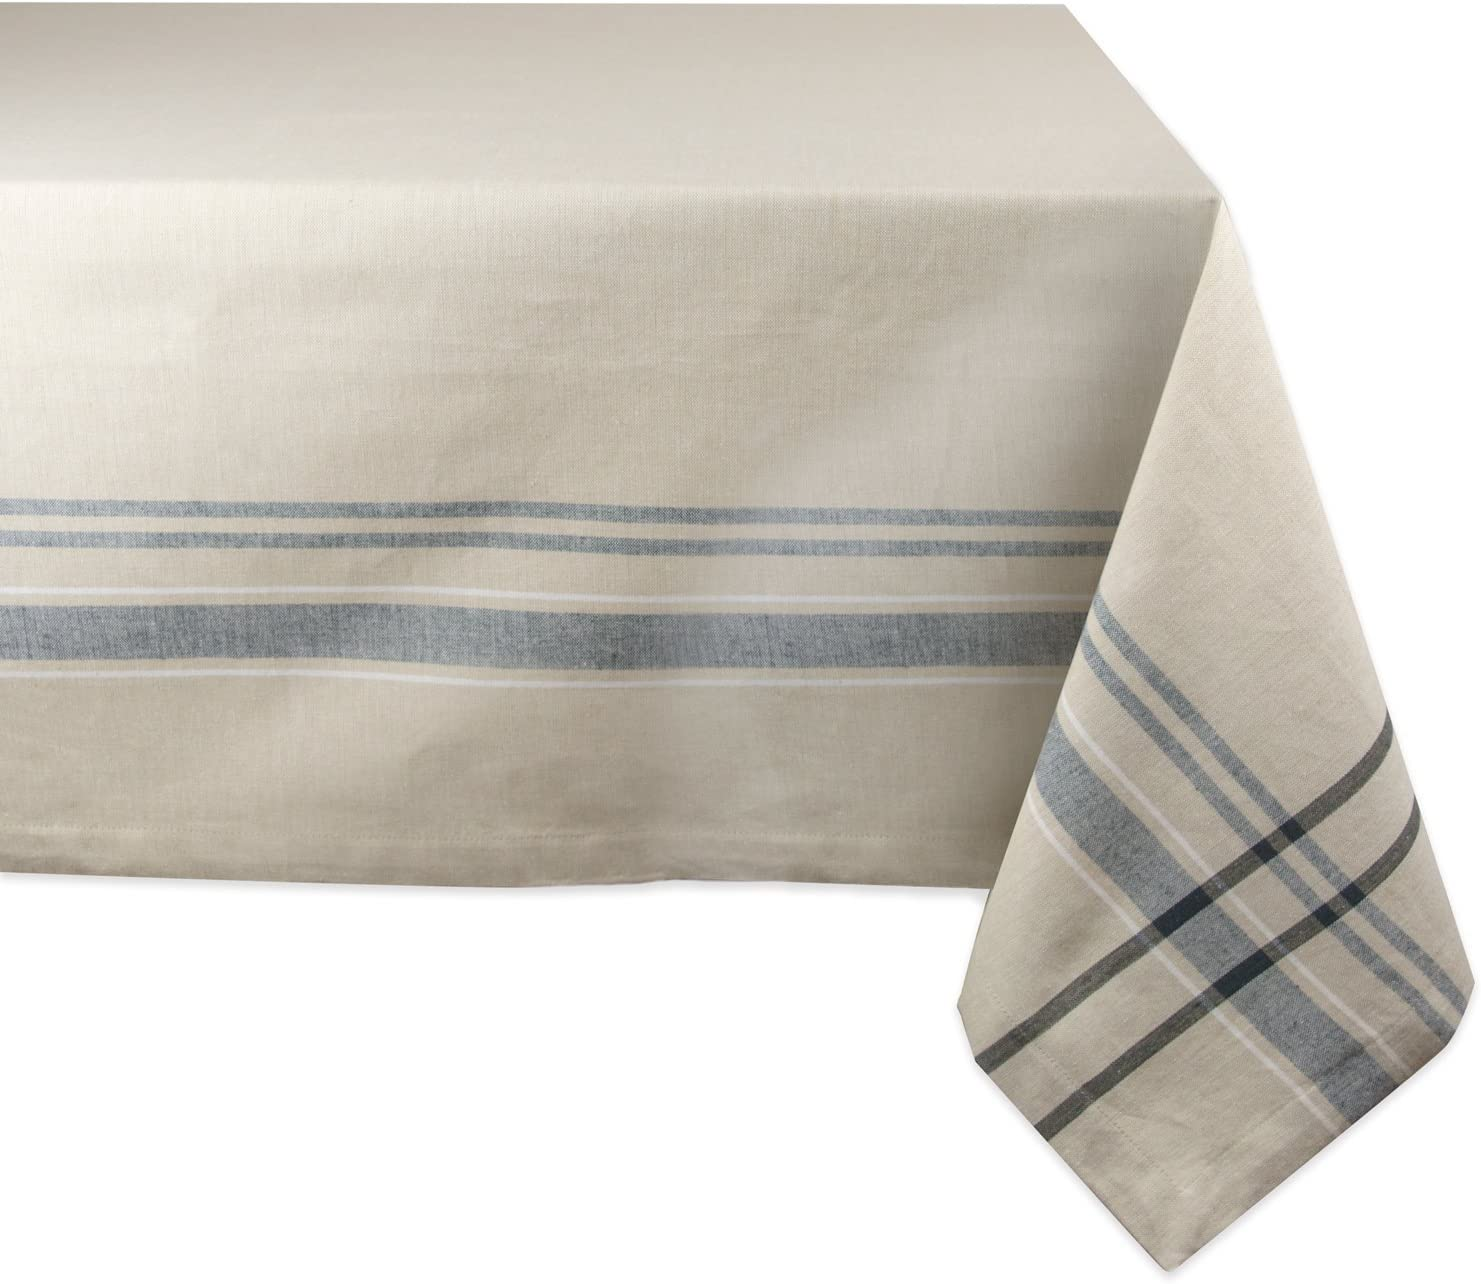 """DII 100% Cotton, Machine Washable, Everyday French Stripe Kitchen Tablecloth For Dinner Parties, Summer & Outdoor Picnics - 60x104"""" Seats 8 to 10 People, Black"""